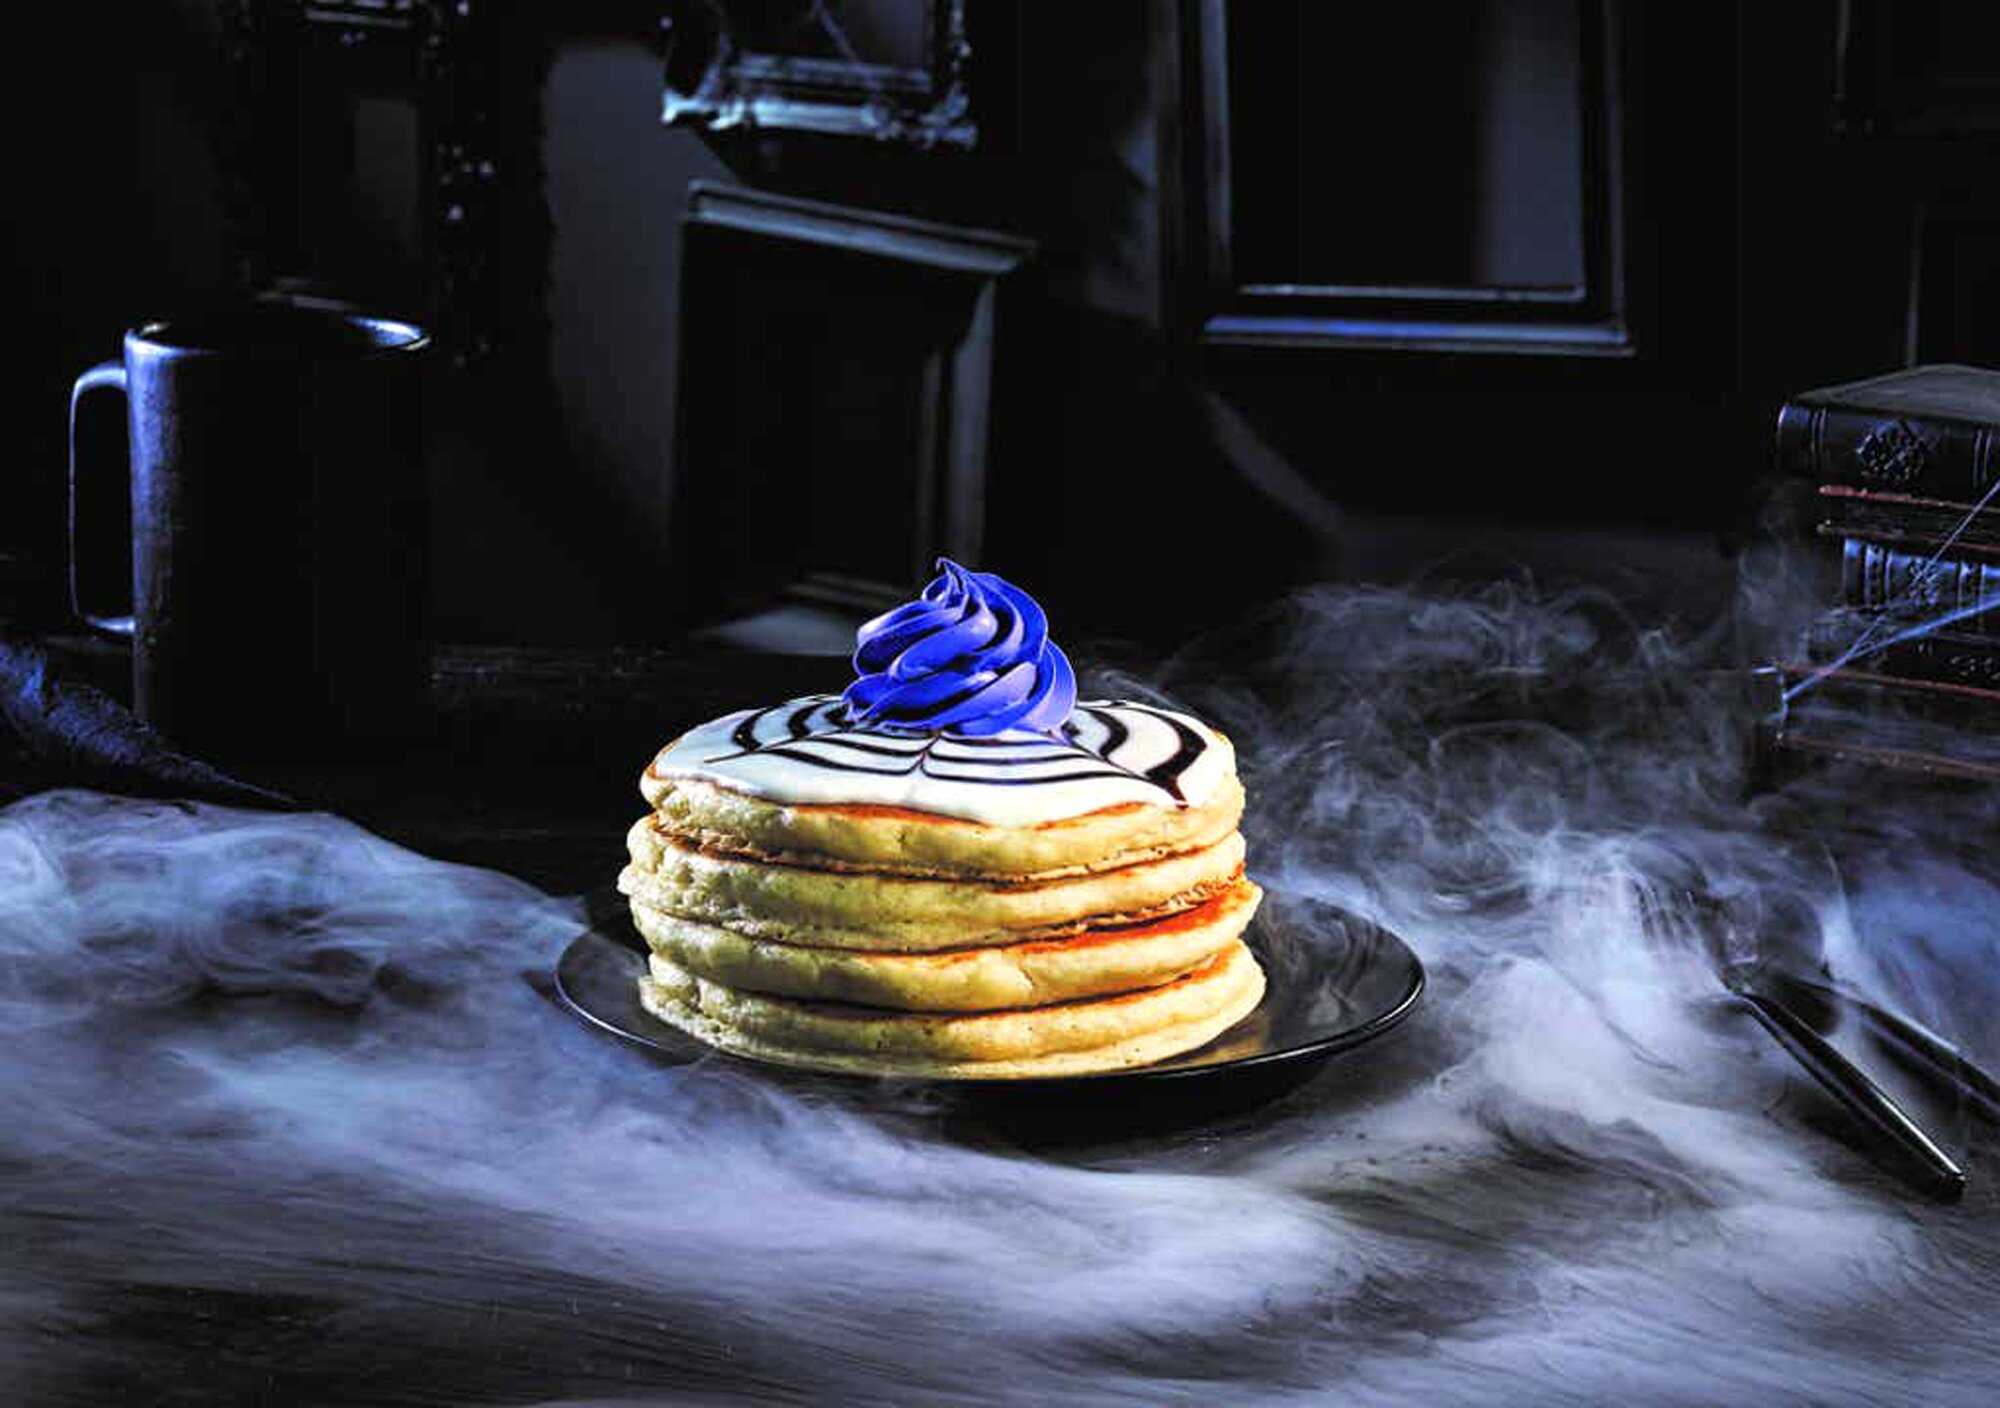 Halloween Restaurant Specials 2020 All the Chain Restaurants Where You Can Get Deals on Spooky Foods